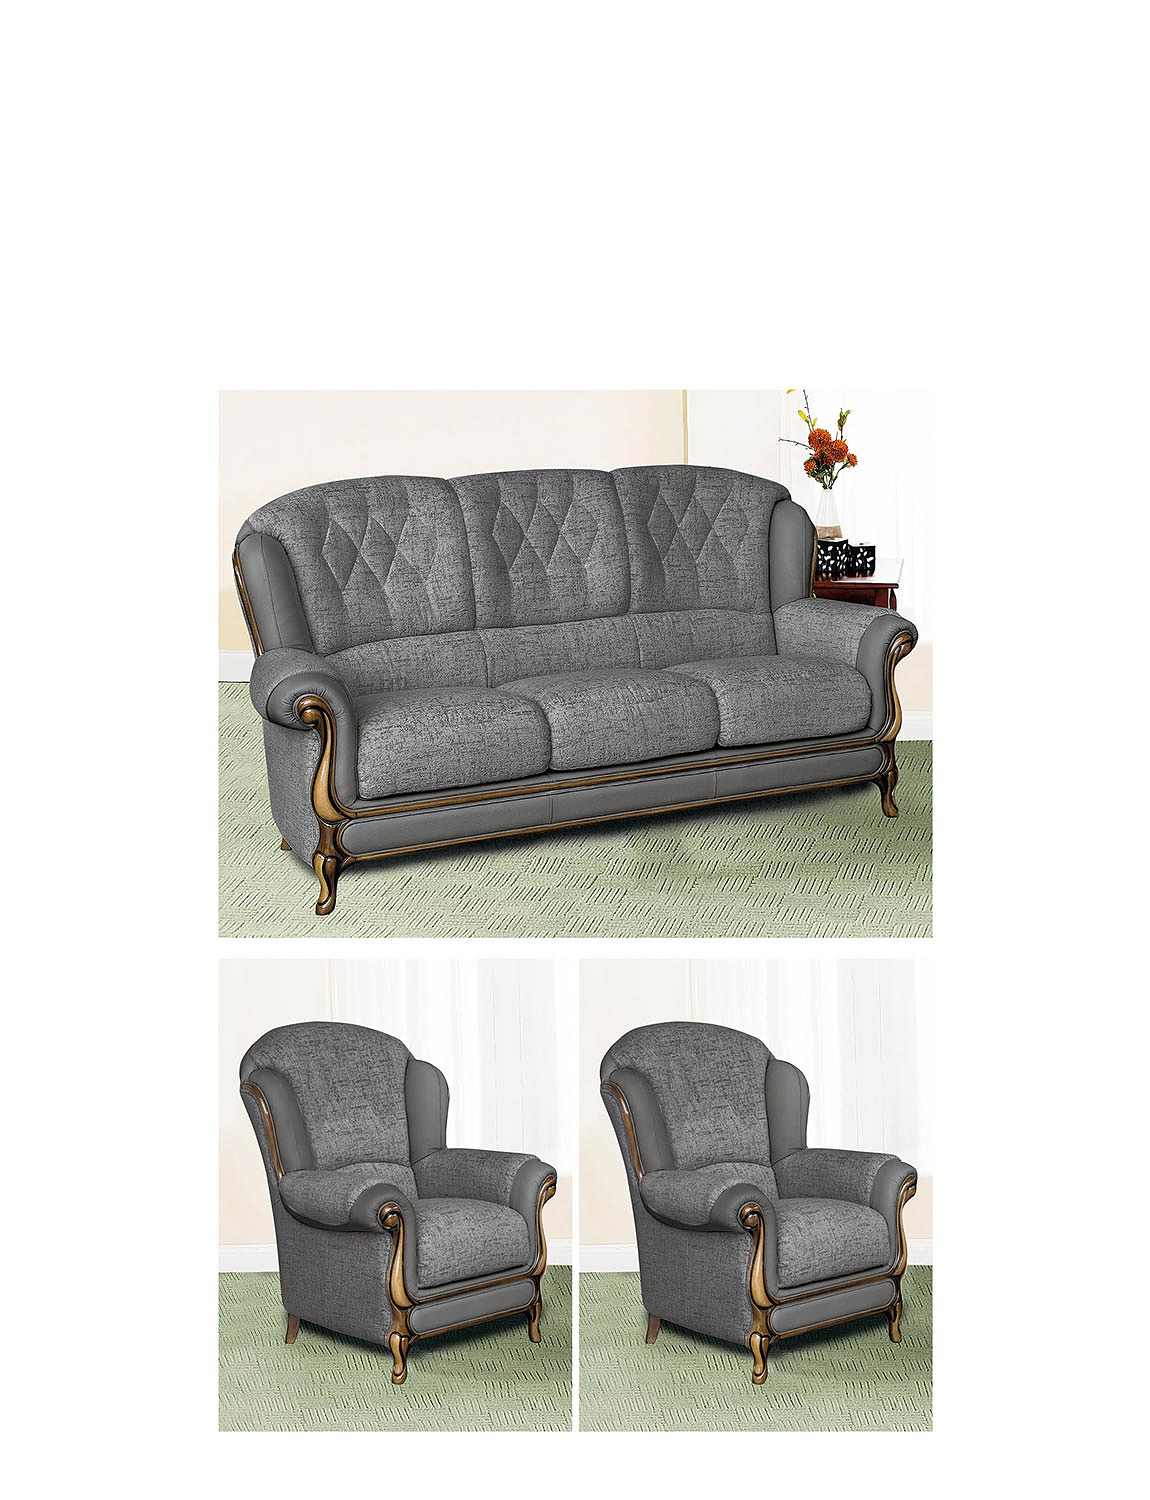 Queen Anne Suite - Three Seater Plus Two Chairs